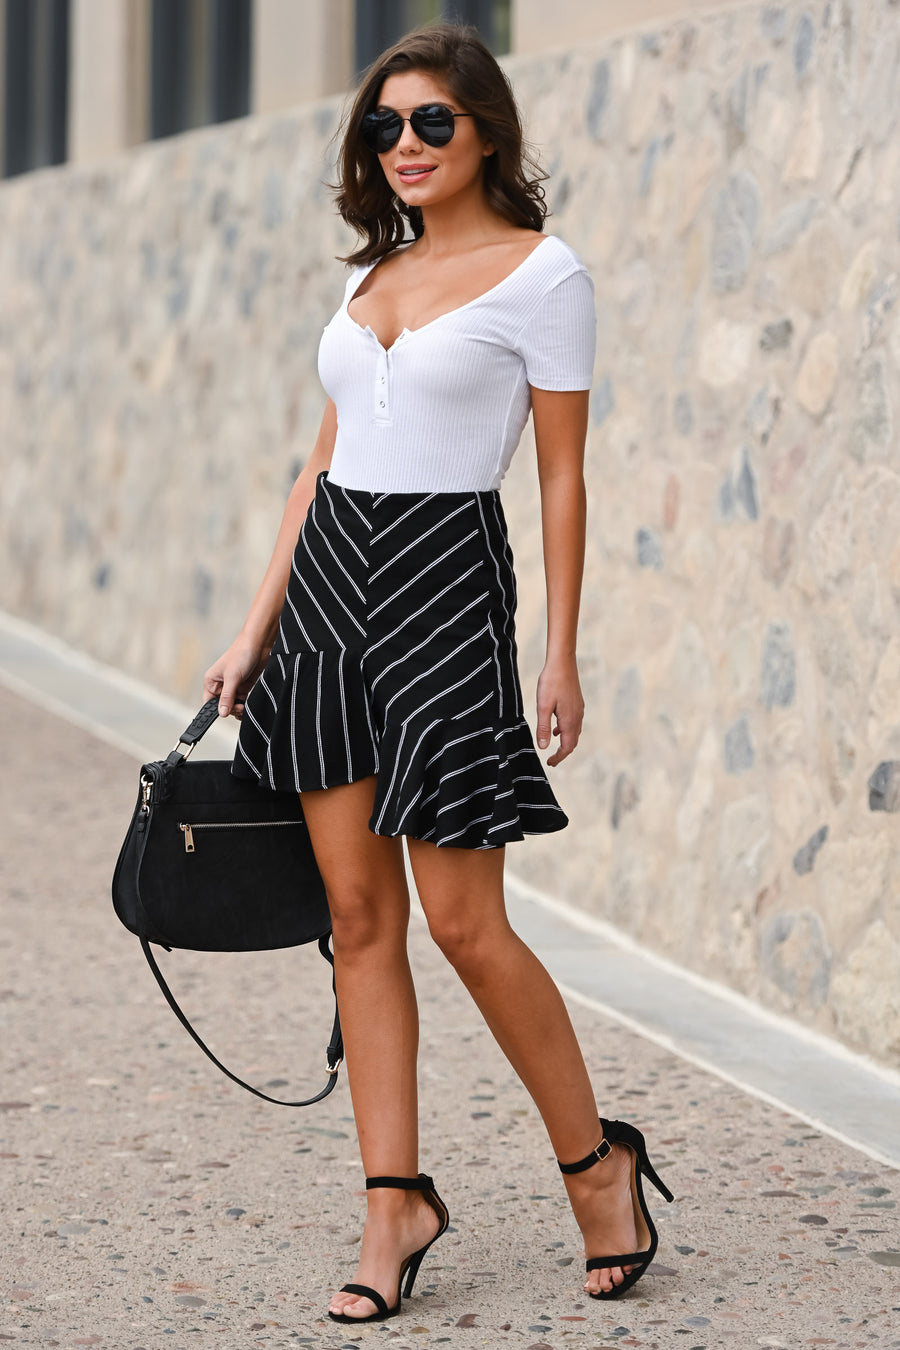 On My Way Up Striped Skirt - Black & white women's asymmetrical ruffled hem skirt, Closet Candy Boutique 1